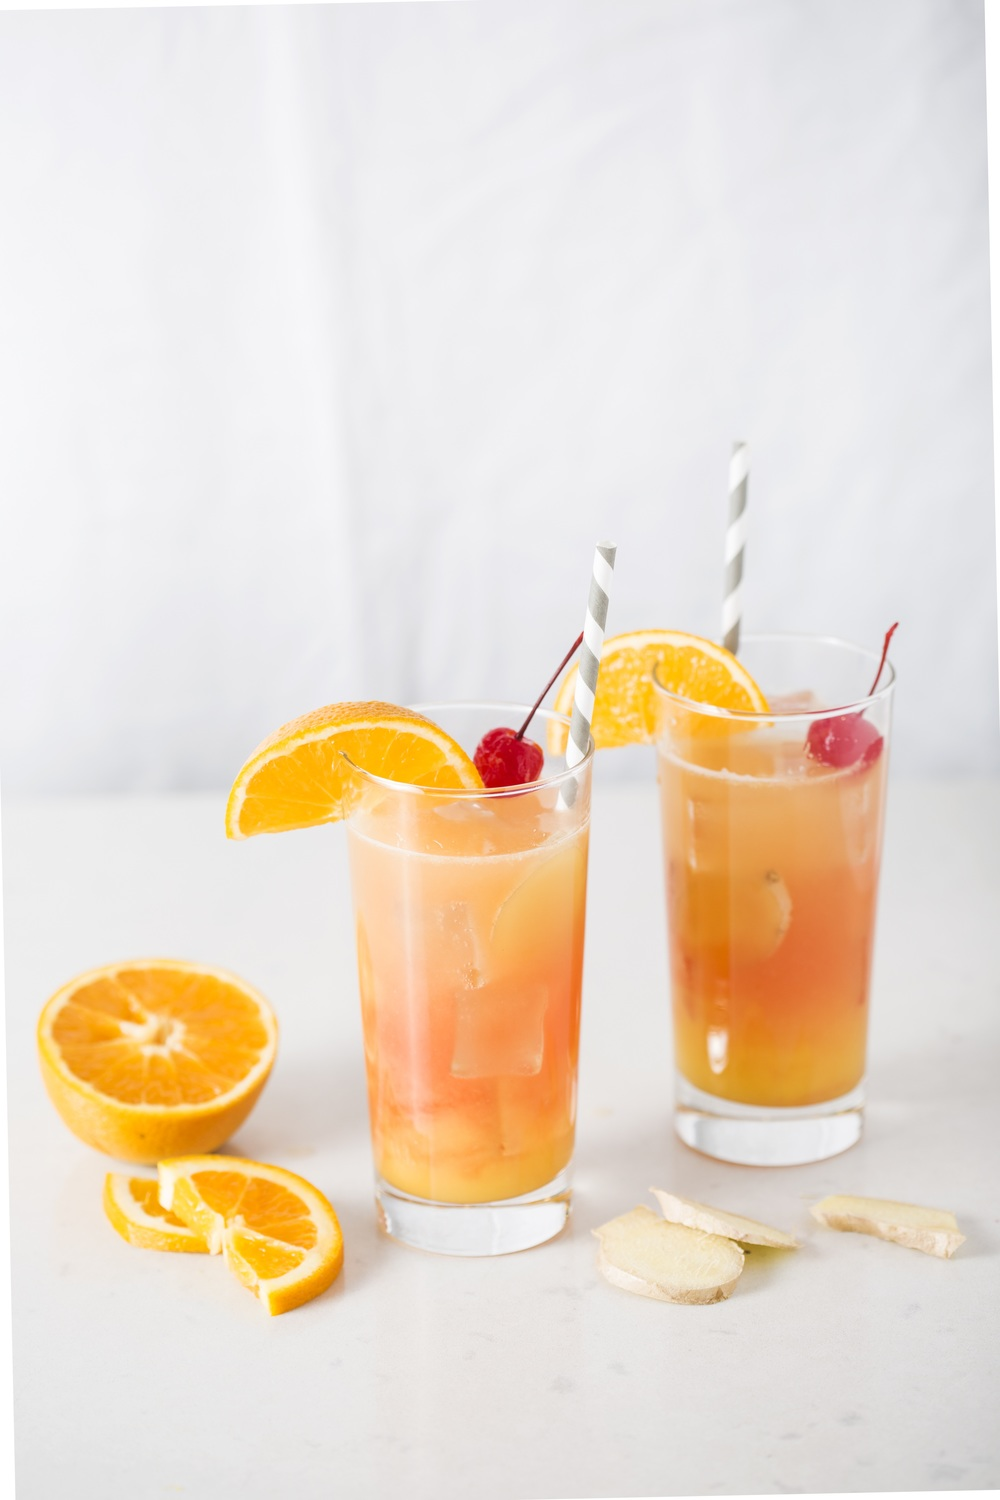 Ginger Pear Shirley Temples